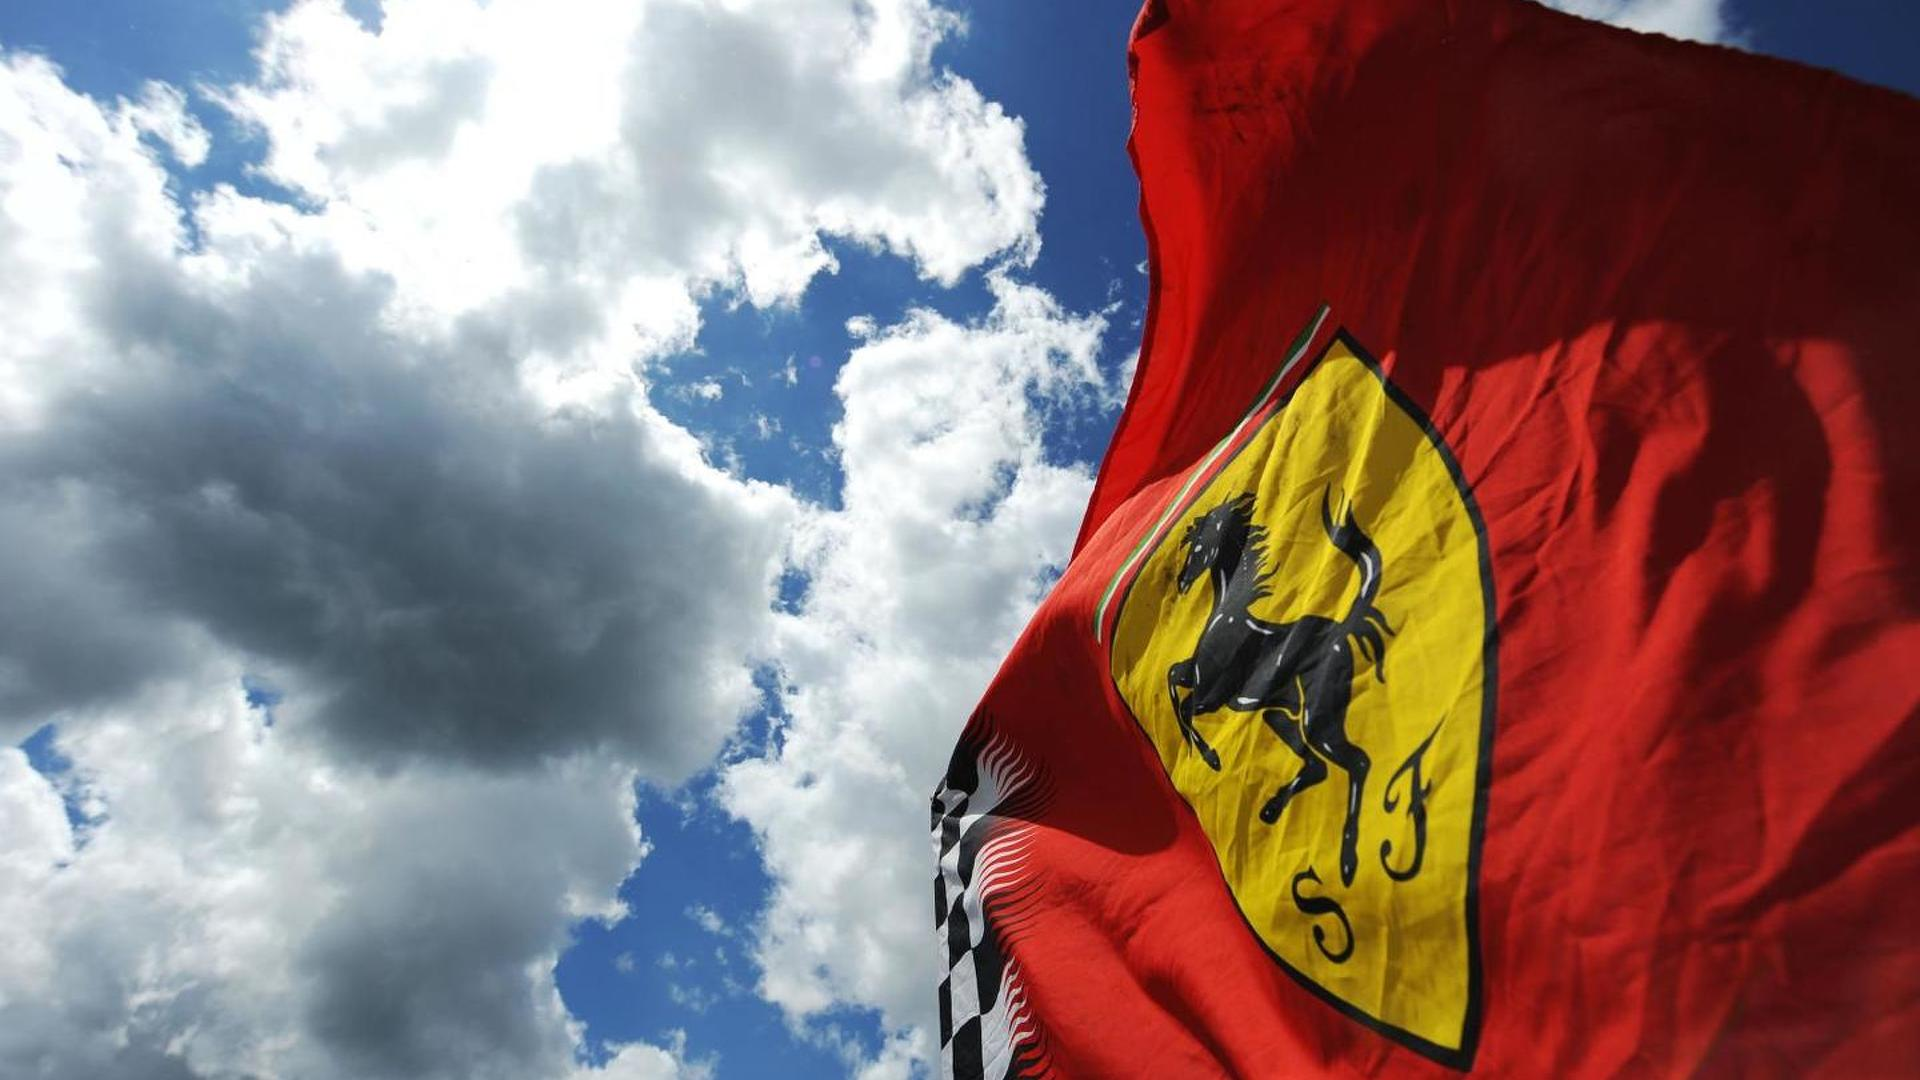 Ferrari team arrives in Malaysia, grieving relatives forced to leave